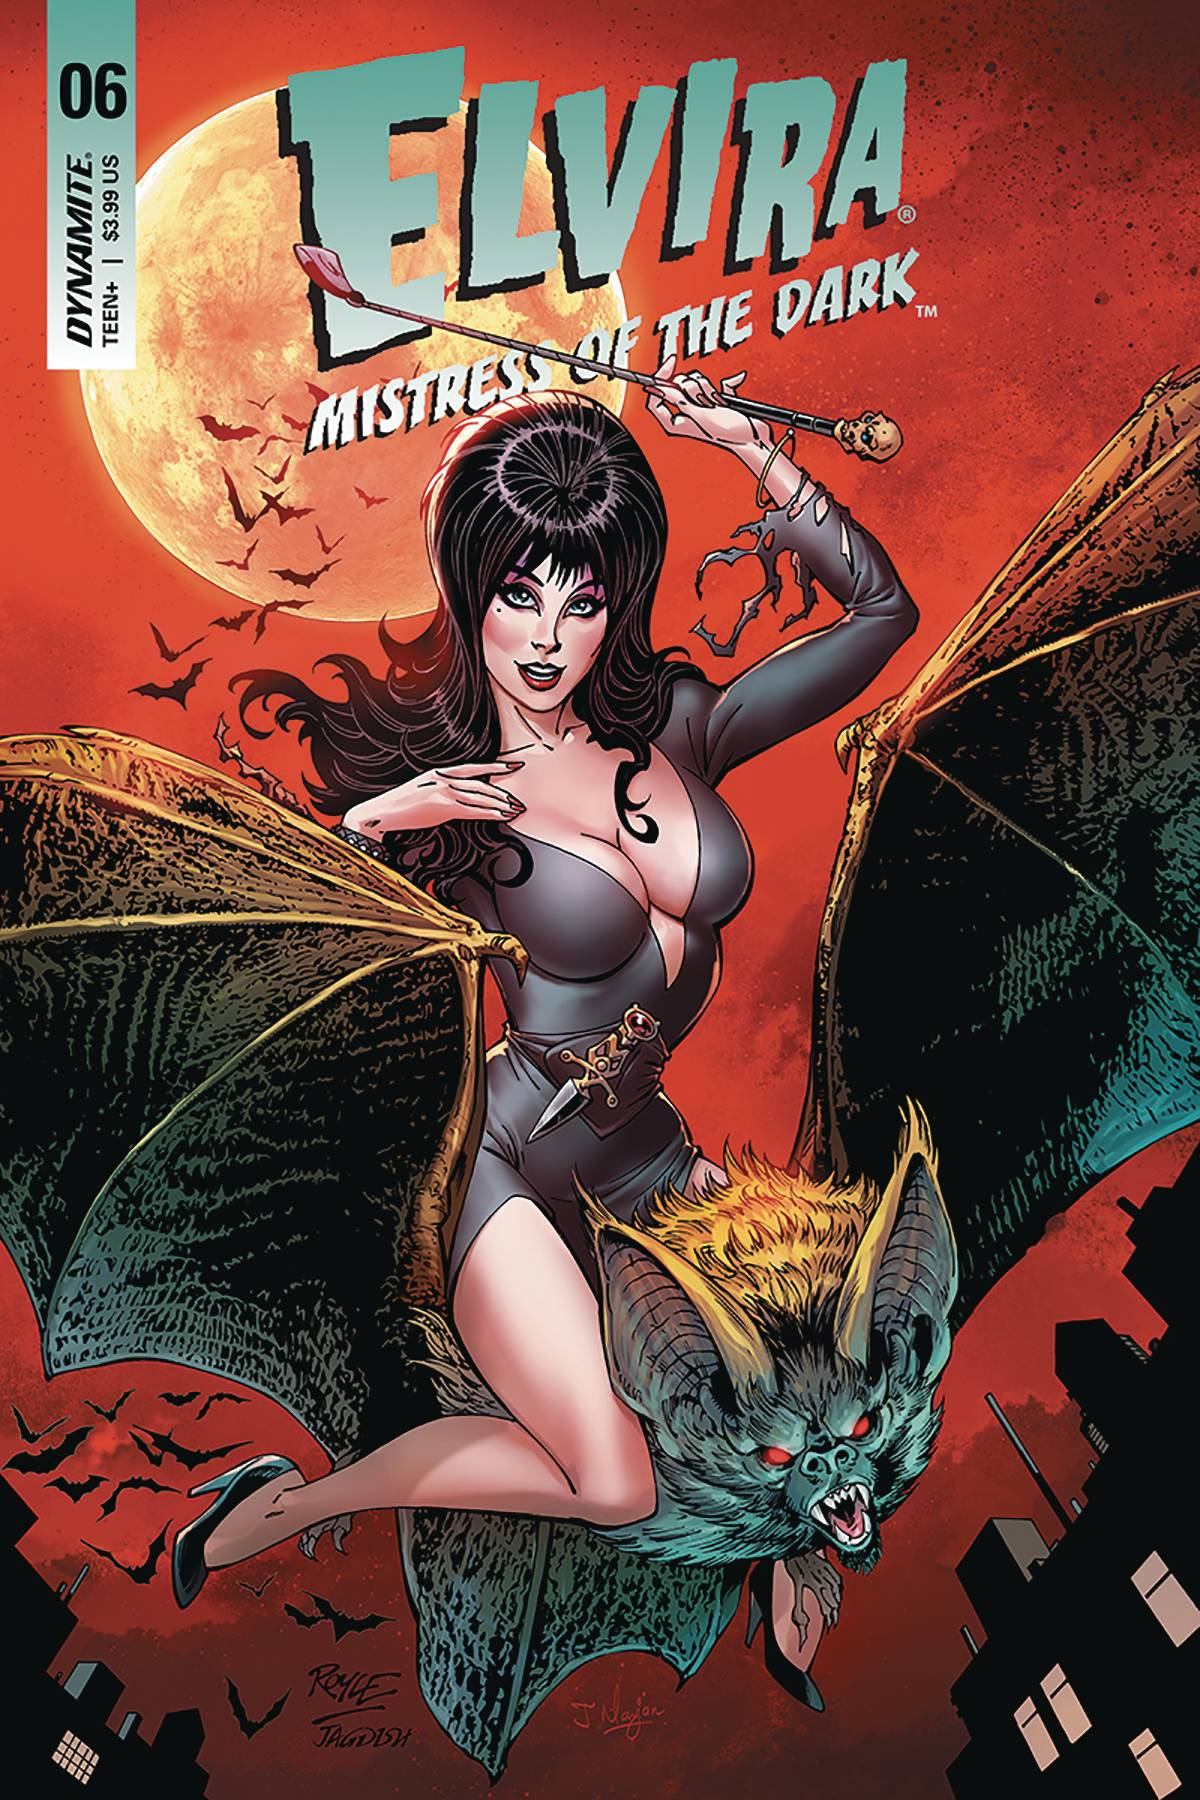 ELVIRA MISTRESS OF DARK 6 CVR C ROYLE.jpg